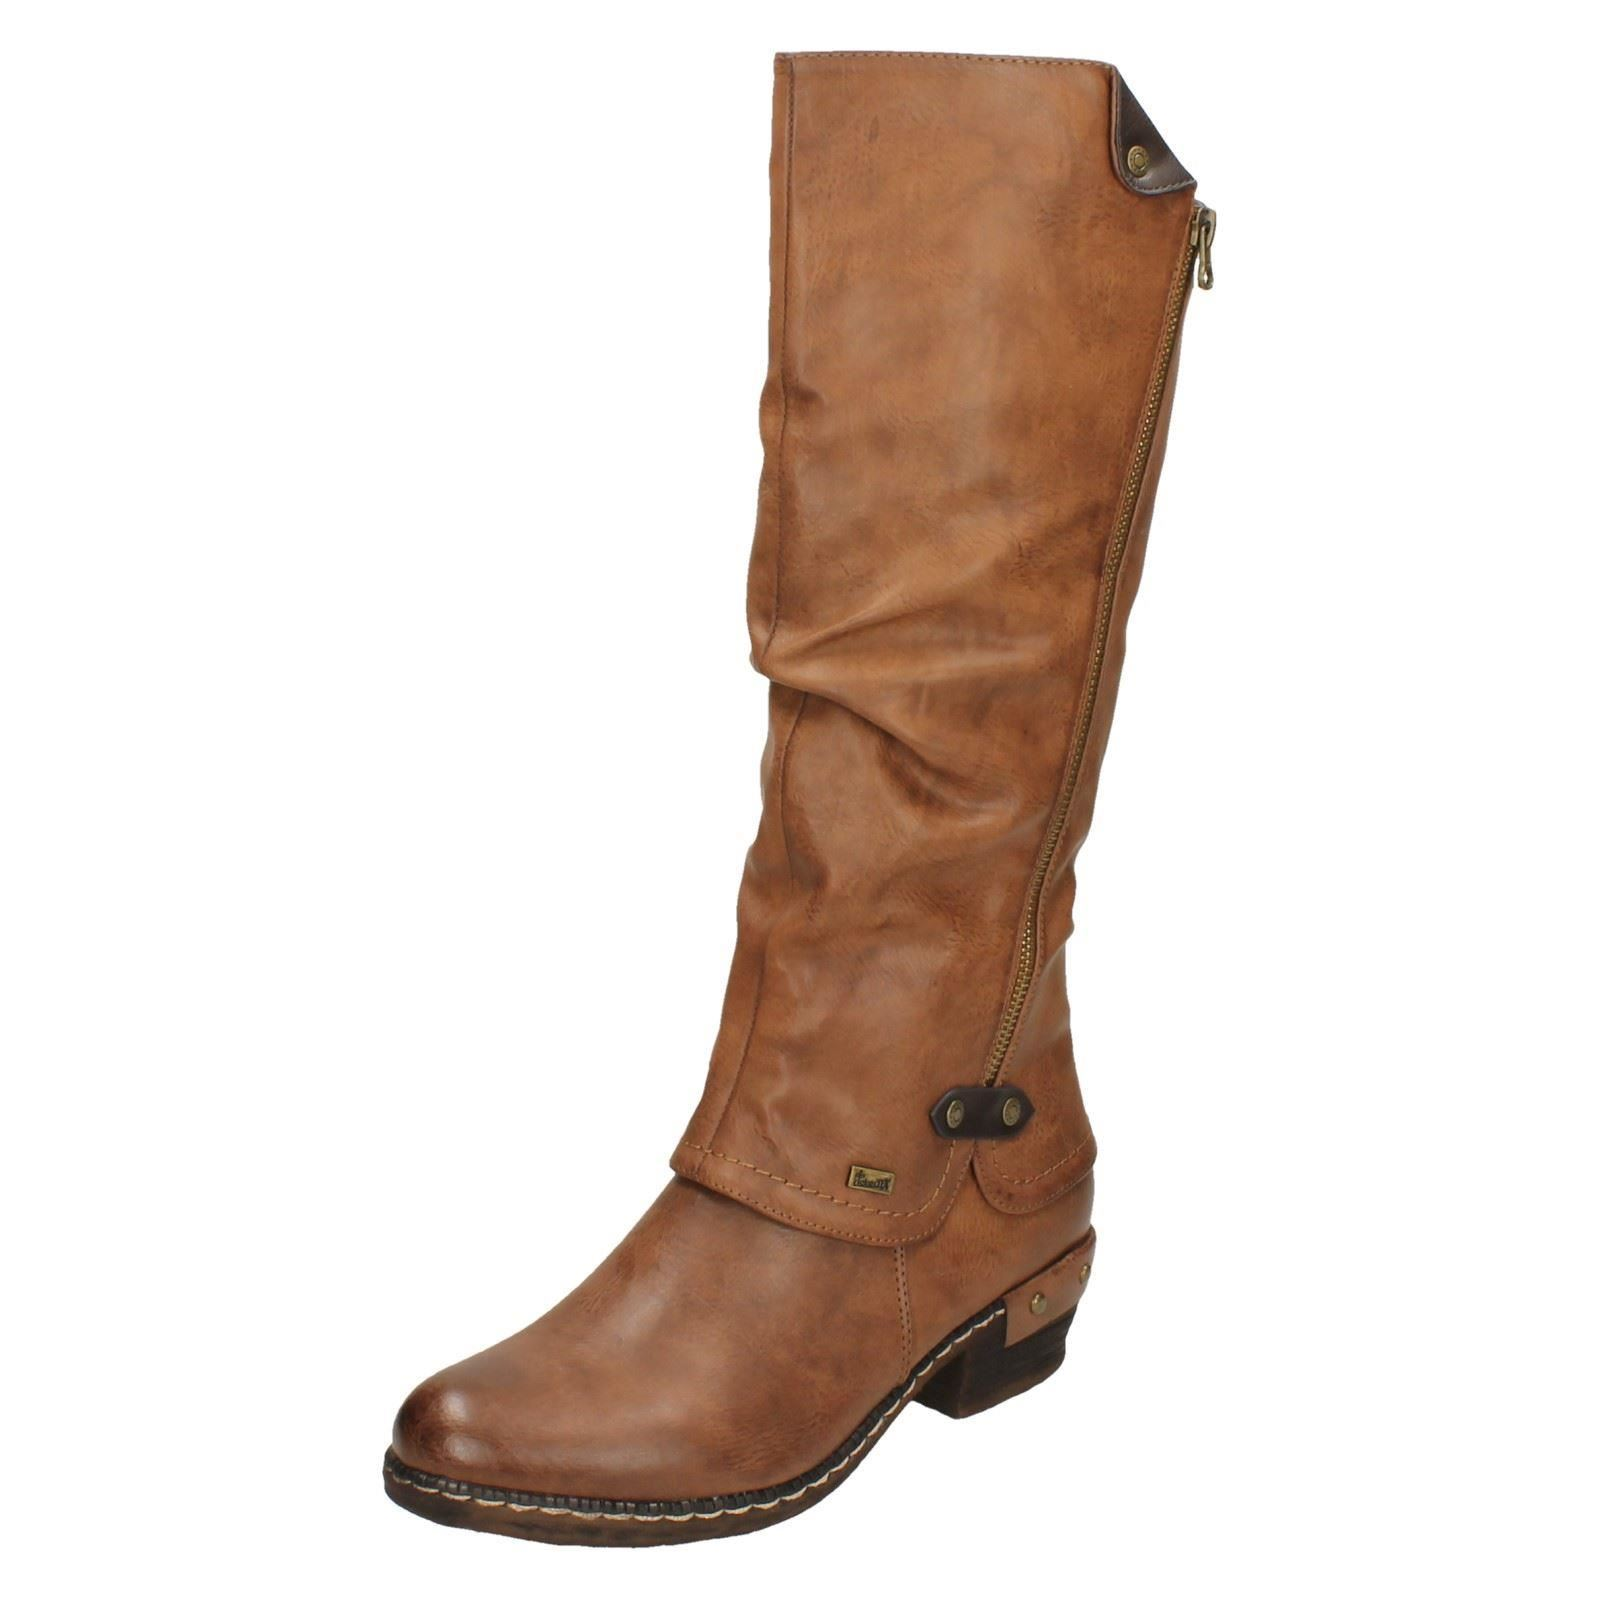 Boots heels model 102188 Inello - - Matter - Inello Shoes 773c65